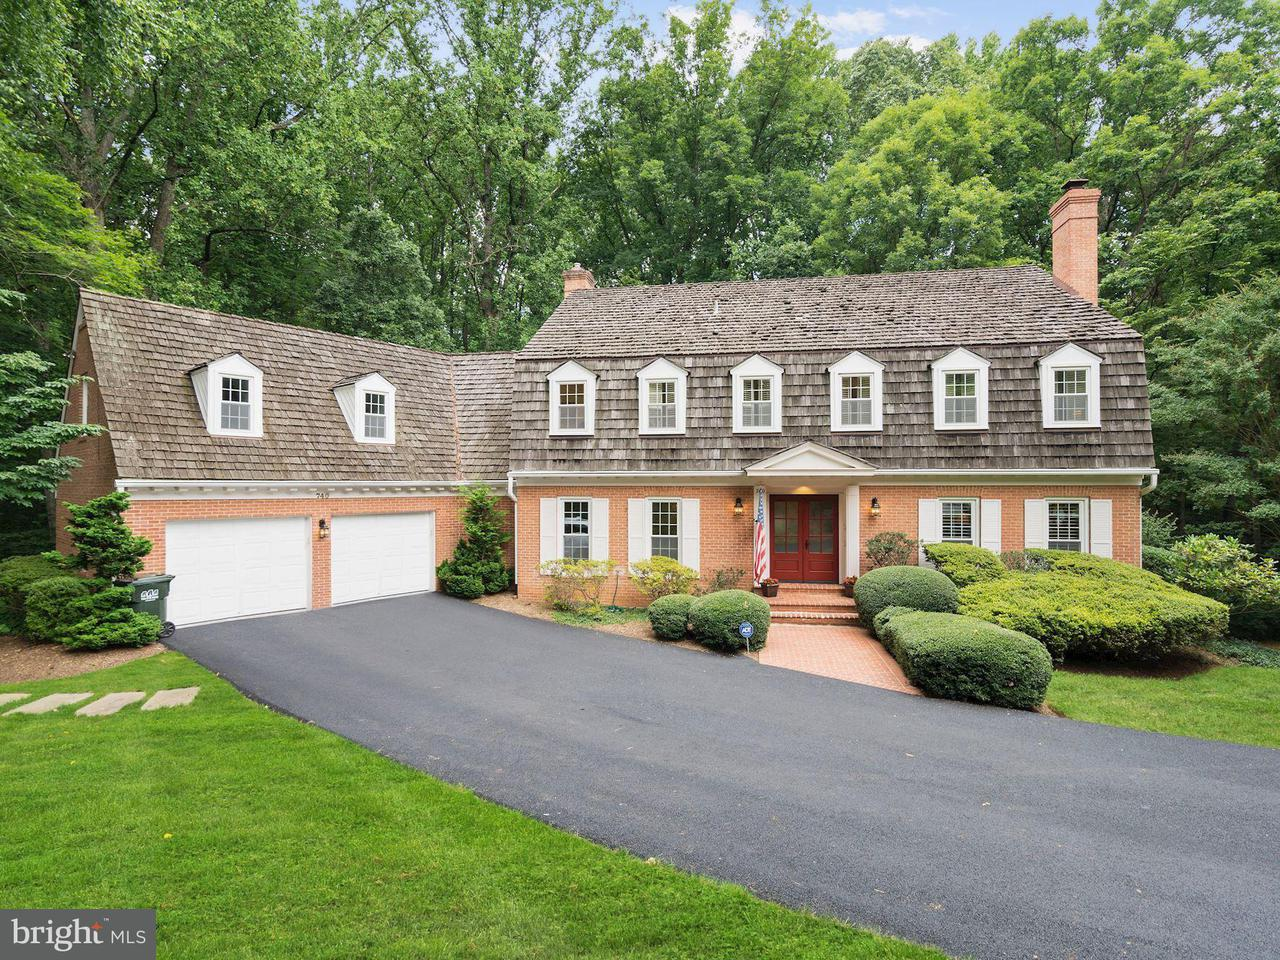 Single Family Home for Sale at 740 Potomac River Road 740 Potomac River Road McLean, Virginia 22102 United States